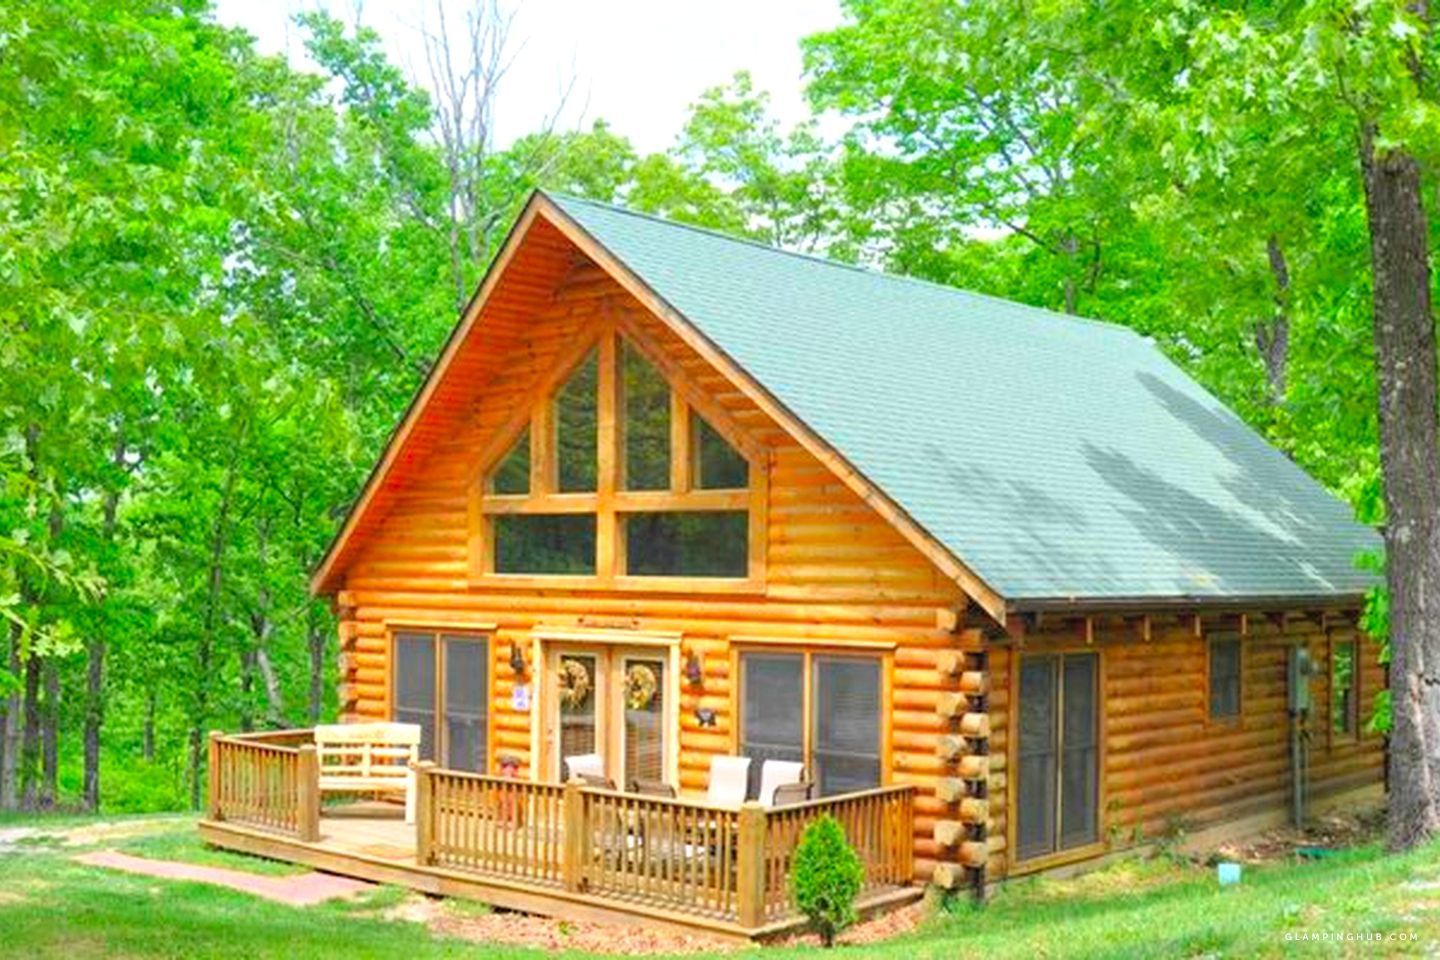 Check Out This Glamping Cabin With Its Own Hot Tub Perfect For A Glamping Getaway To The Ozarks In Missouri Cabin Log Cabin Homes Branson Vacation